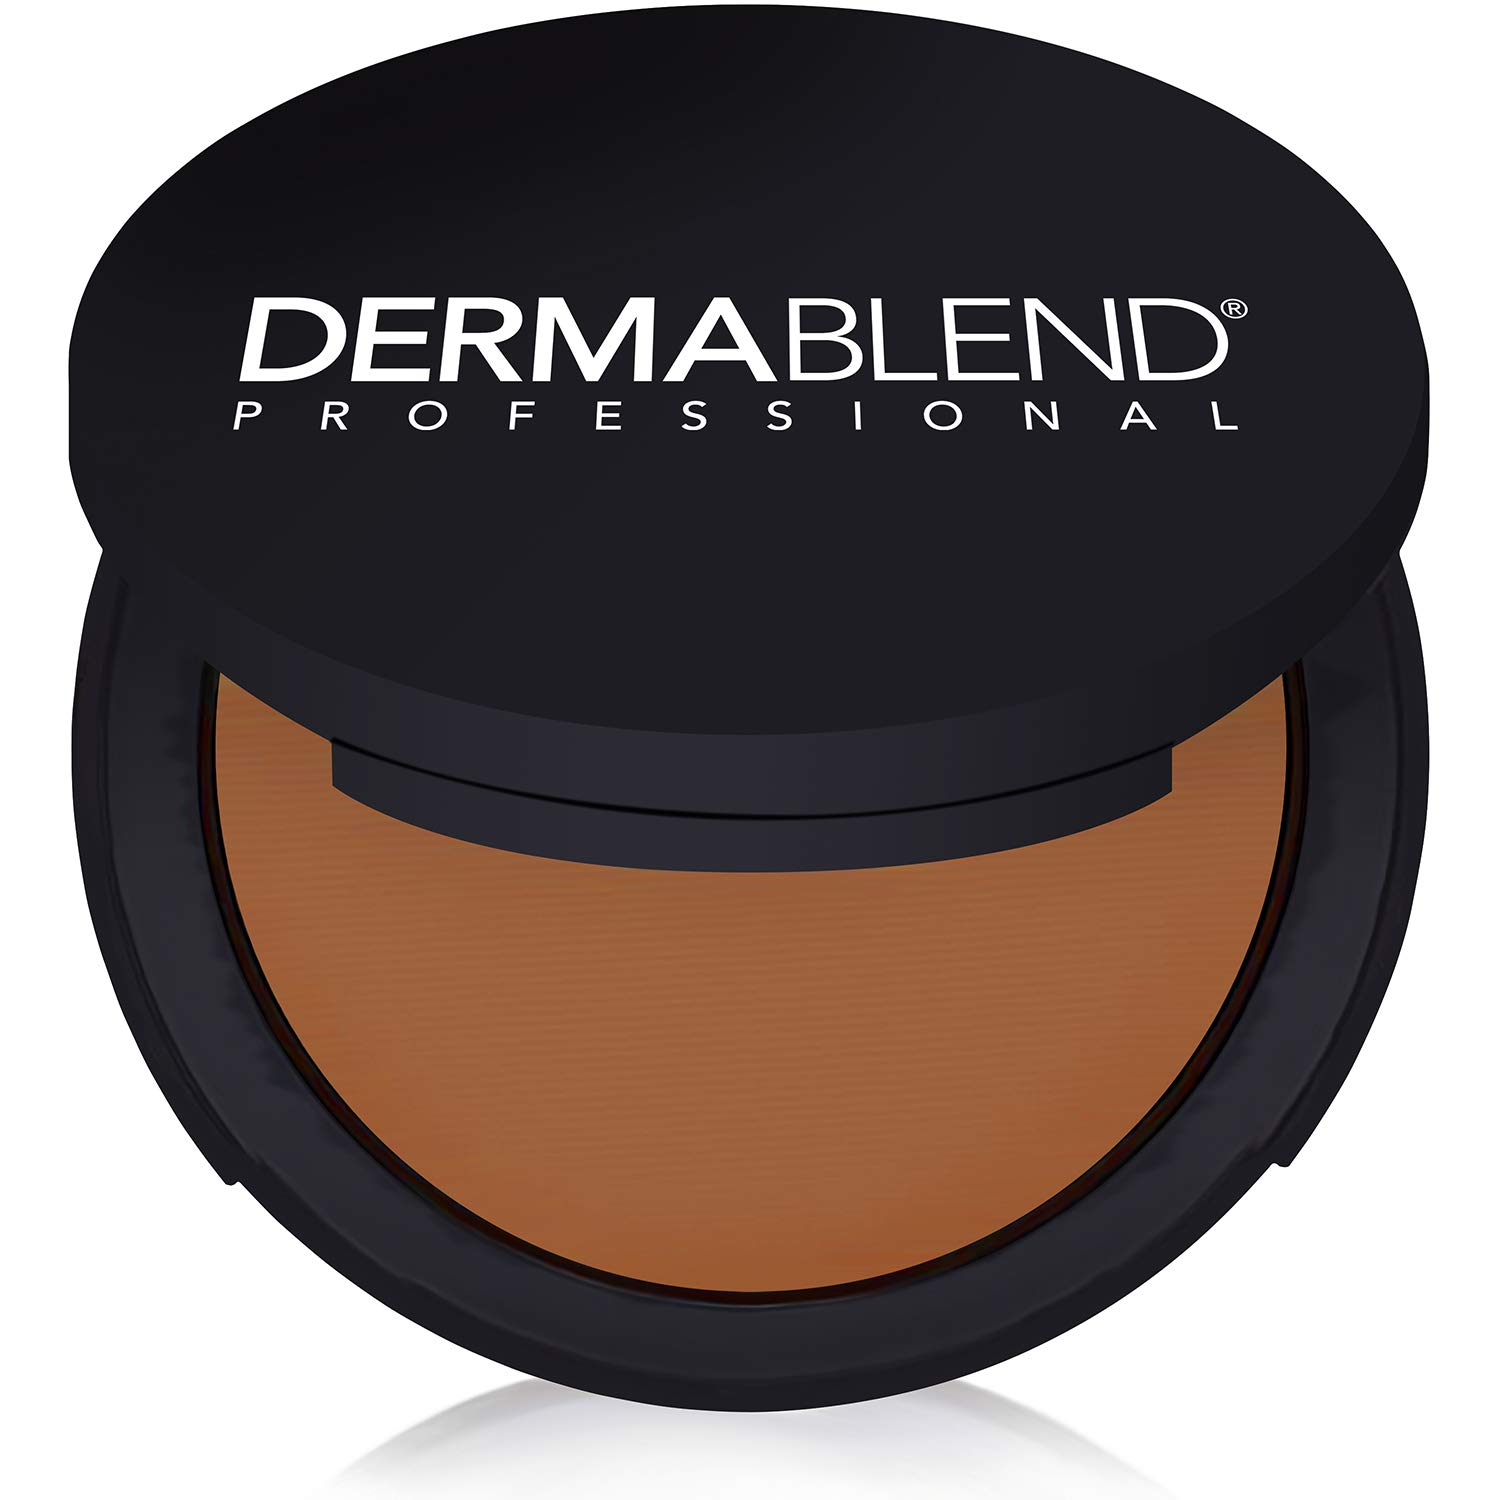 Dermablend(ダーマブレンド) インテンスパウダー カモ コンパクト ファンデーション (ミディアム Buildable to High Coverage) - # Suede 13.5g/0.48oz B00M0V3NNS